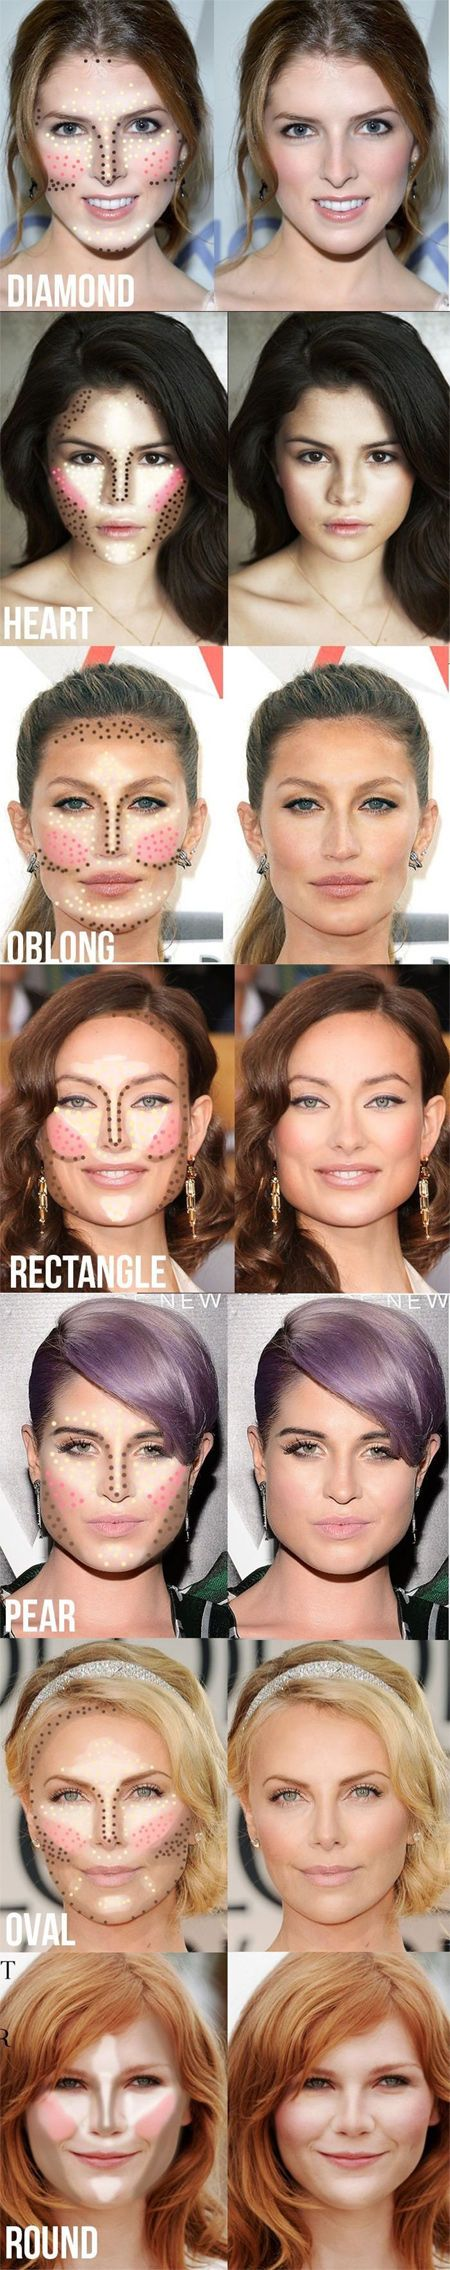 Makeup for different face shapes